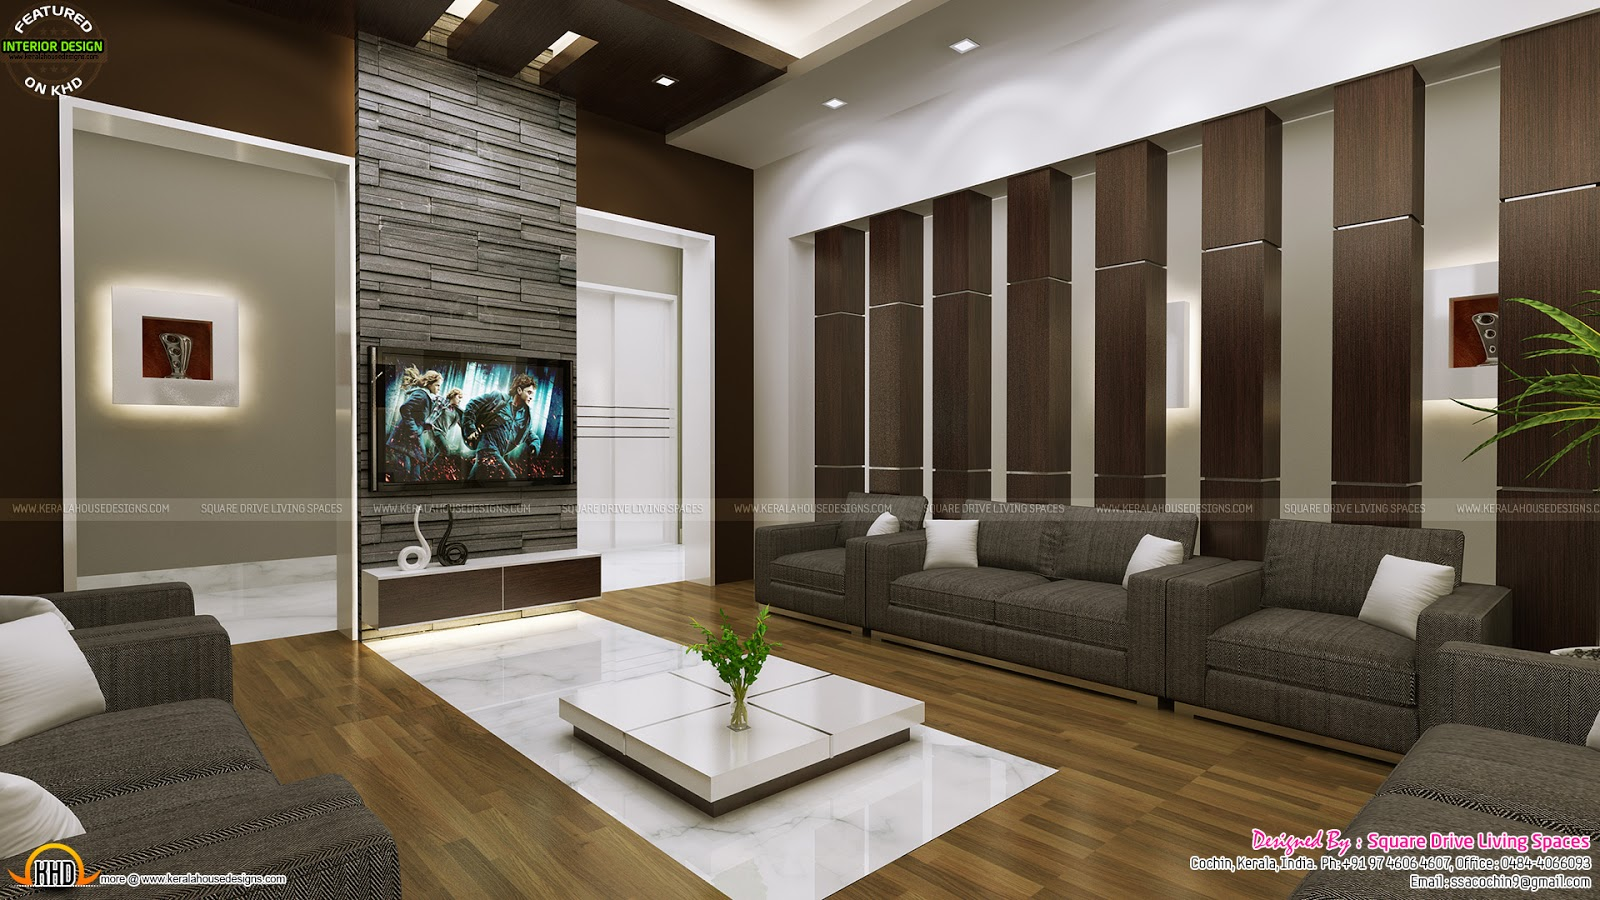 Attractive home interior ideas kerala home design and for Interior designers and decorators